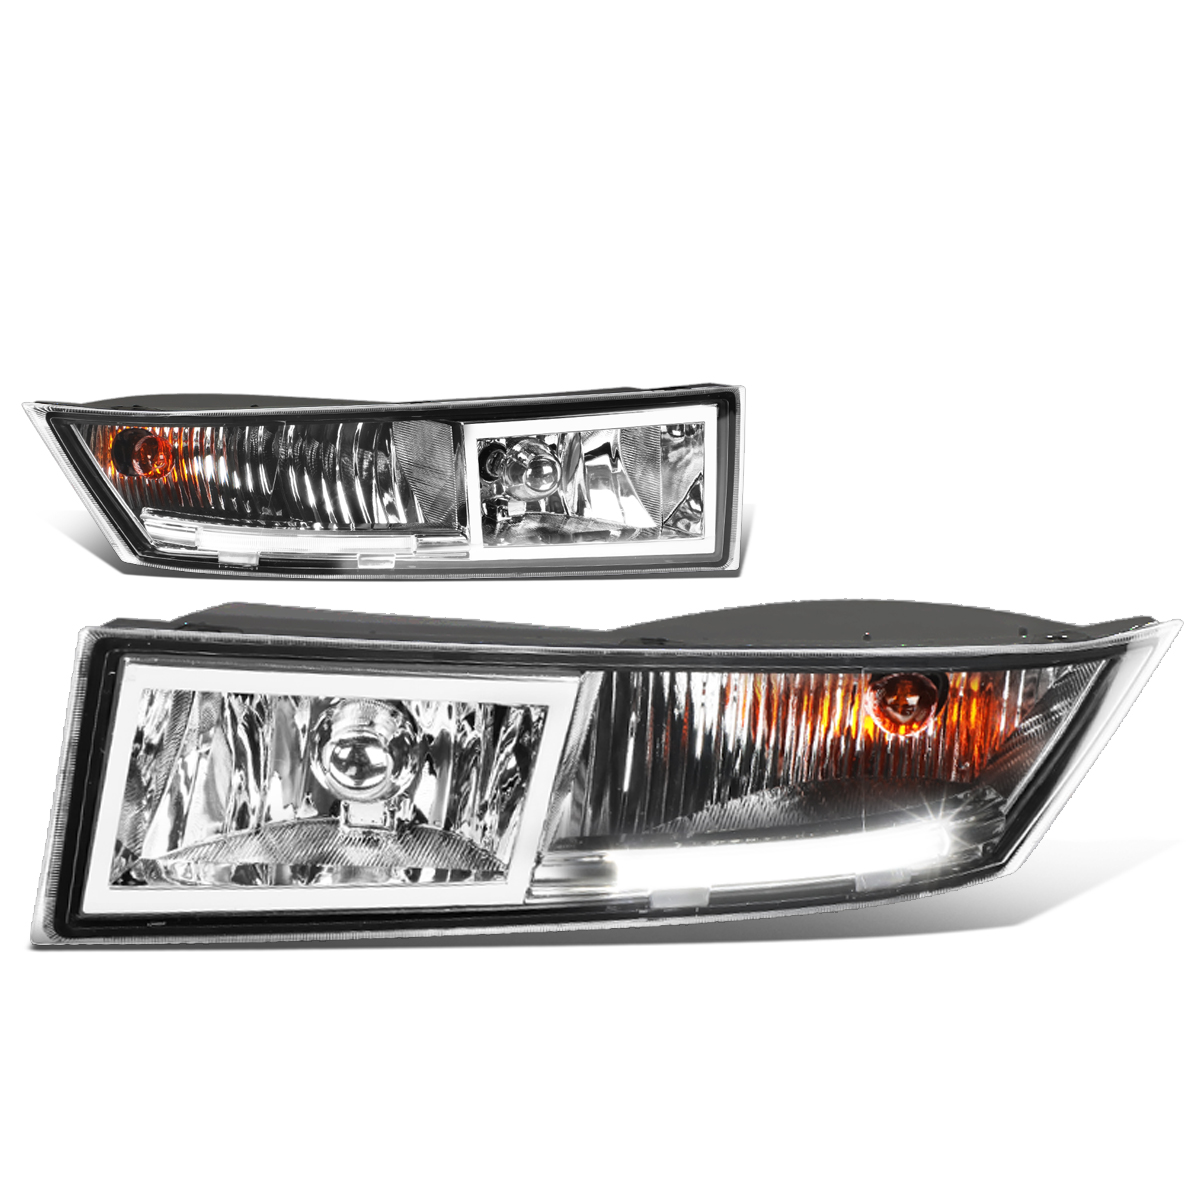 07-14 Cadillac Escalade ESV EXT Pair Of Bumper Driving LED